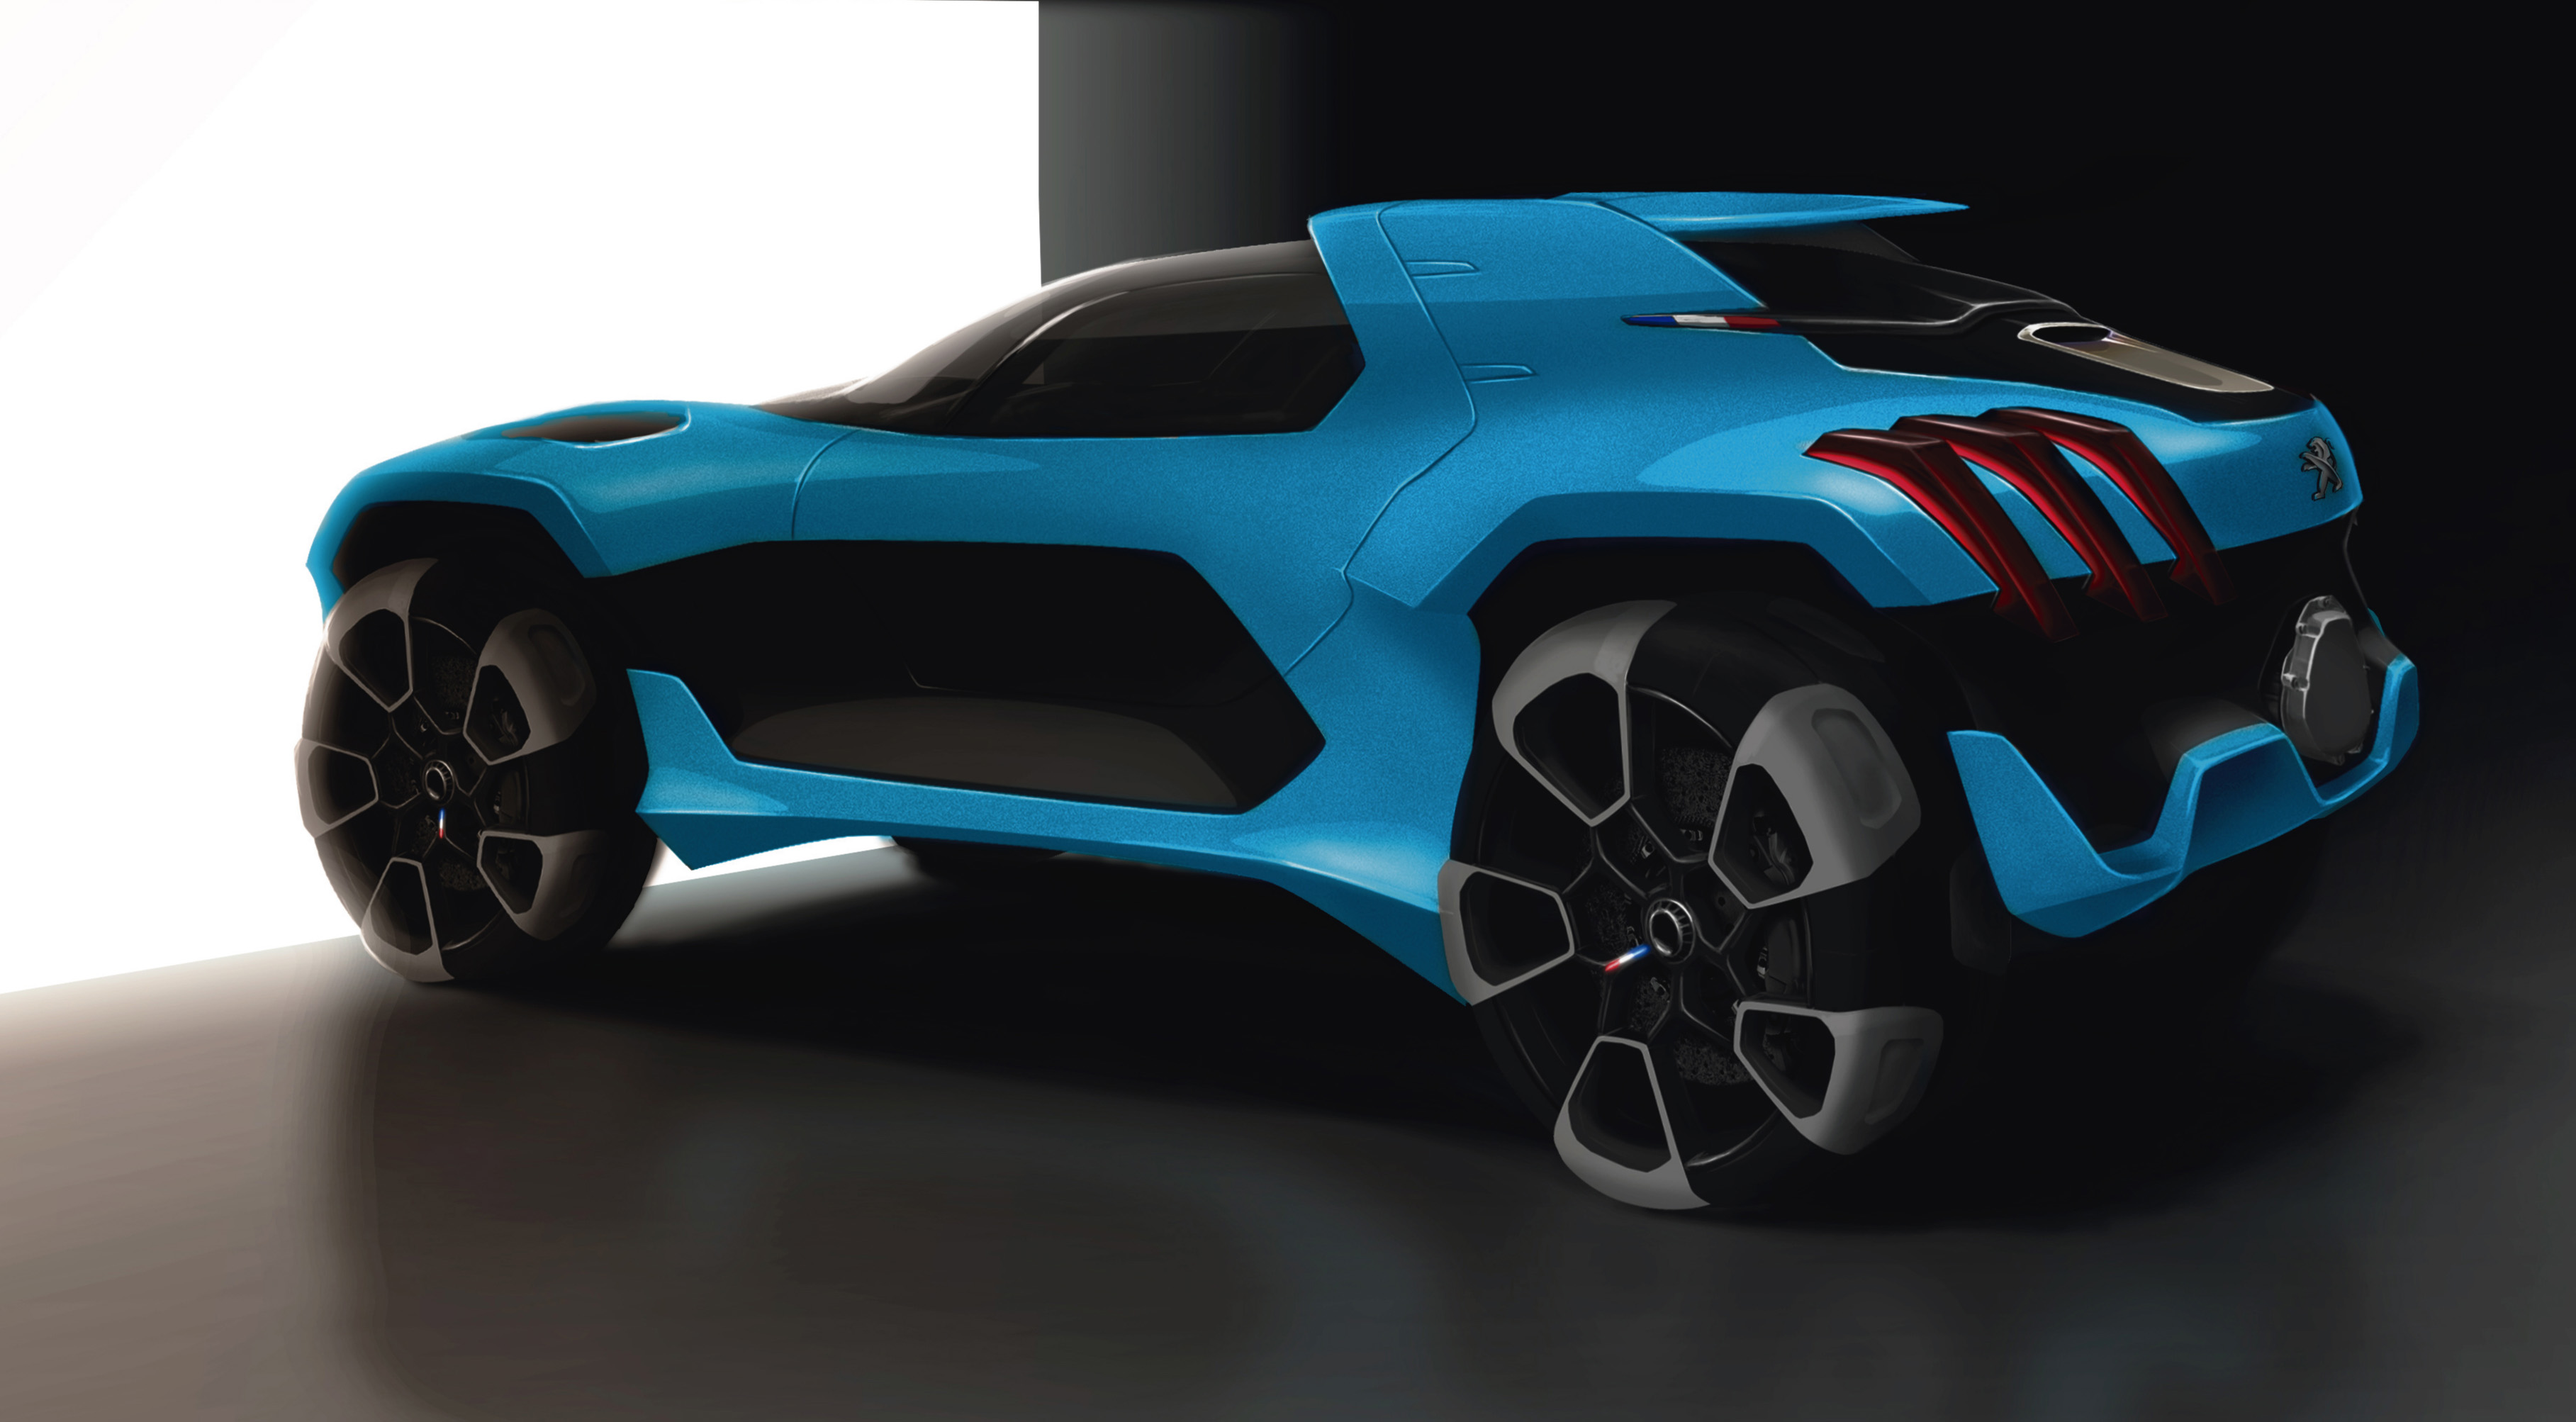 peugeot_toundra_project_lateral.jpg